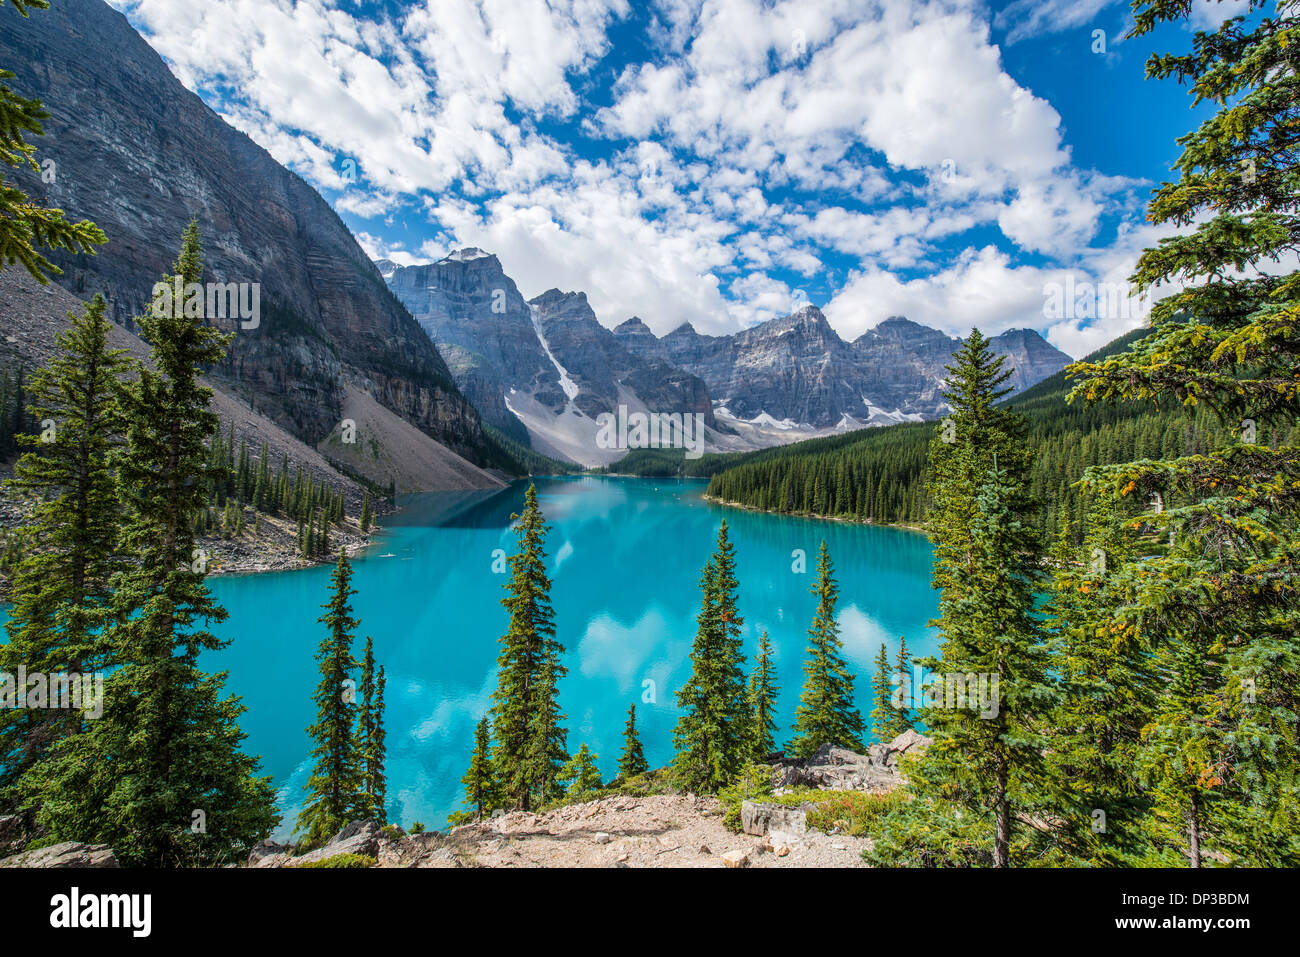 Moraine Lake, Banff National Park, Alberta, Canada, Canadian Rockies, Blue color from glacial and limestone silt. - Stock Image